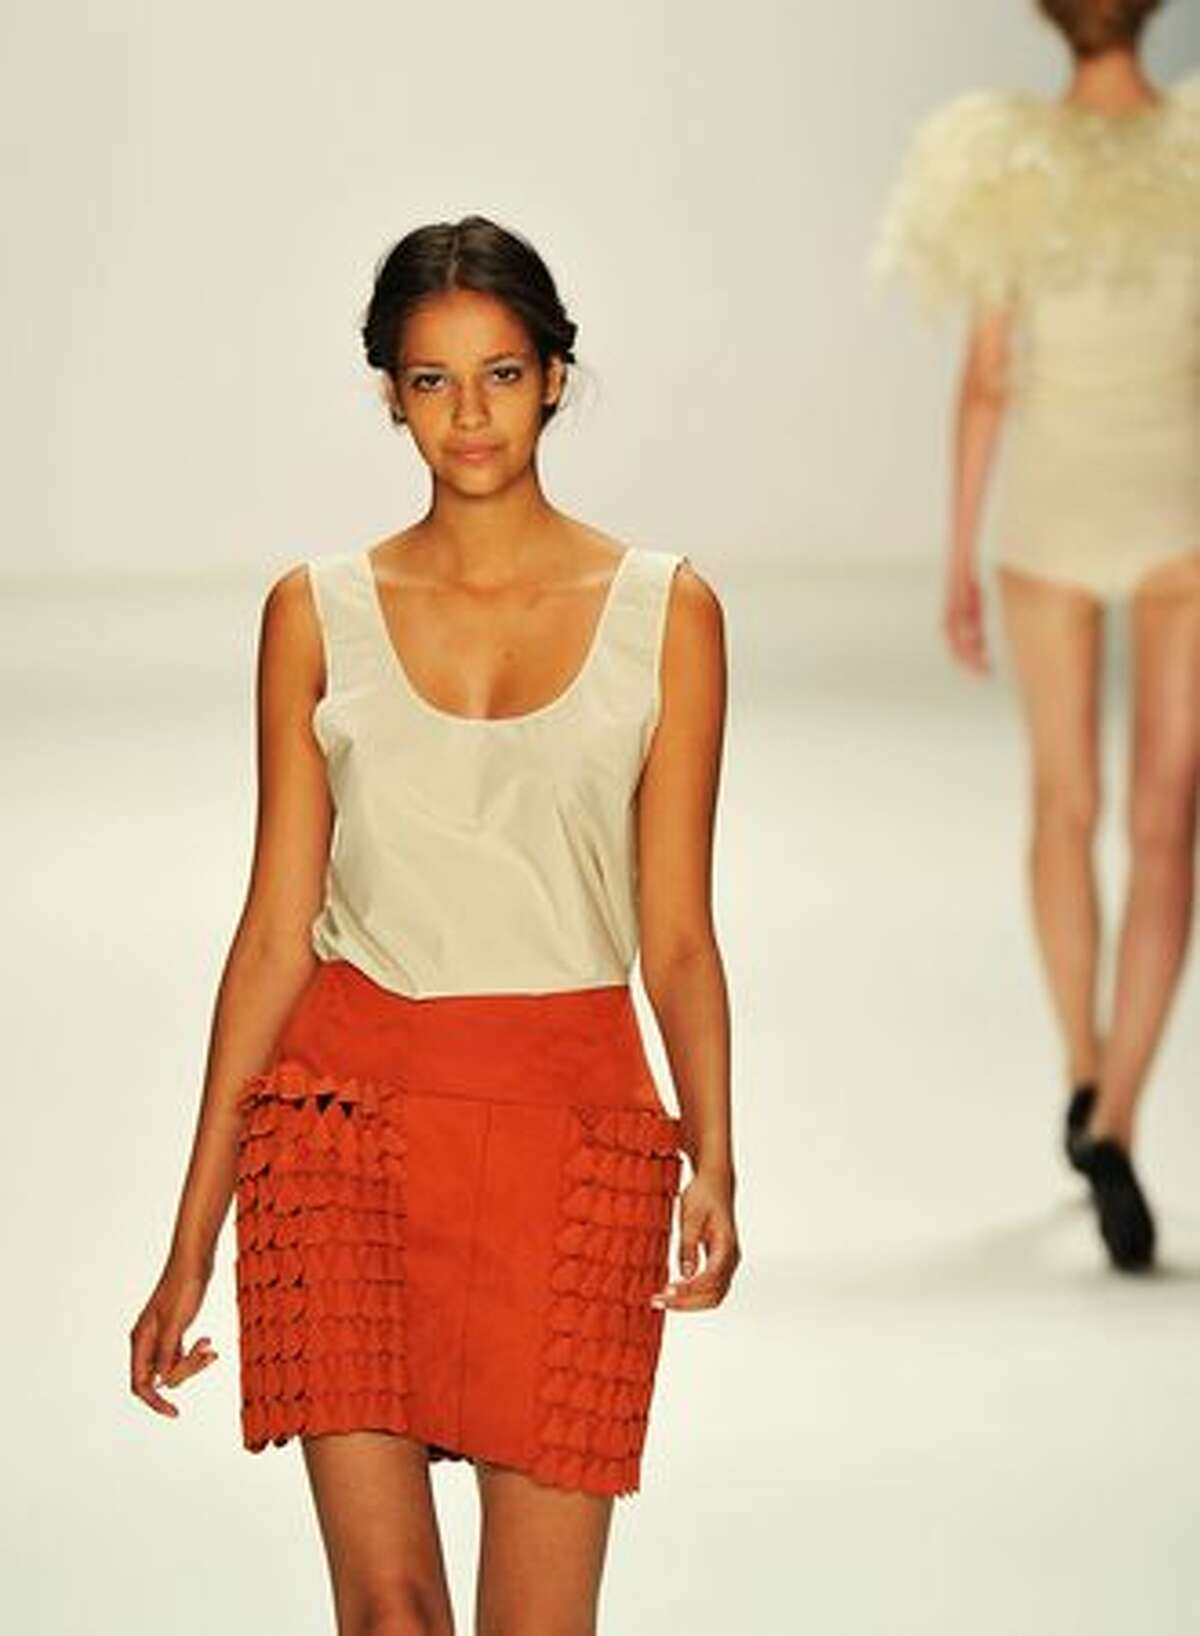 A model walks the runway at the 30Paarhaende Show during the Mercedes Benz Fashion Week Spring/Summer 2011 at Bebelplatz on July 10, 2010 in Berlin, Germany.